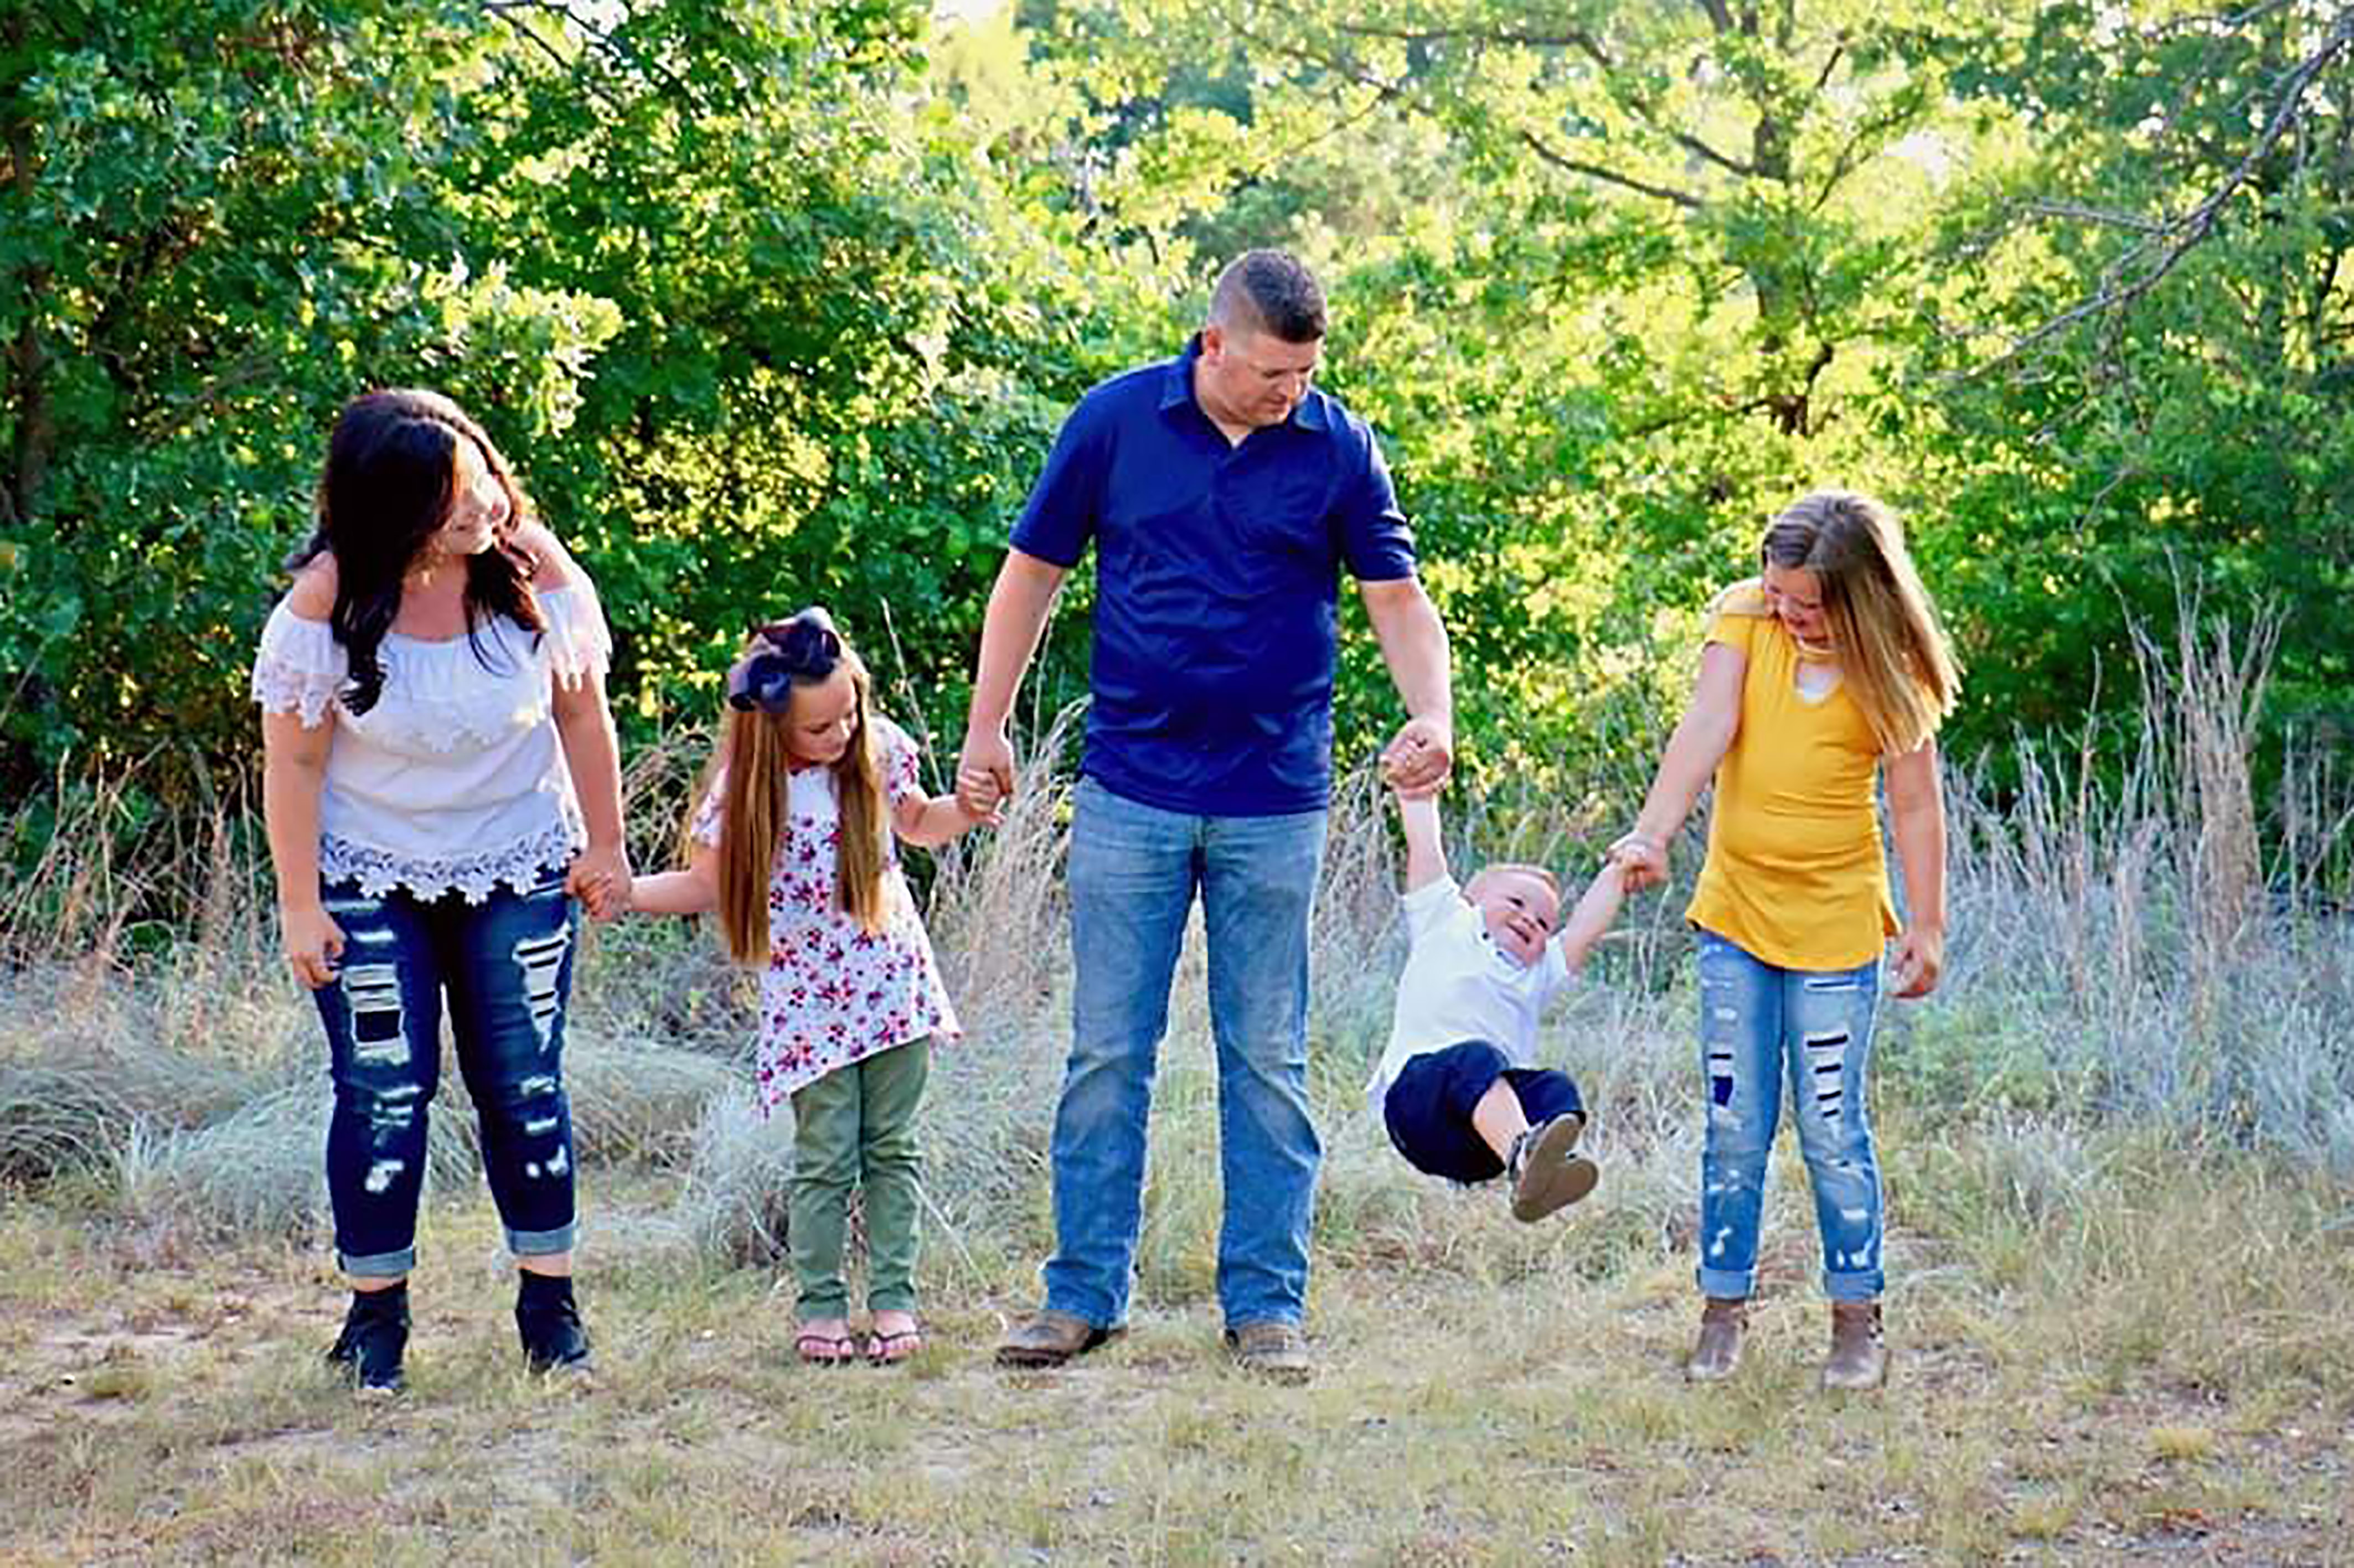 Brittney Sullivan with her husband David Sullivan and their kids Makennah, 10 (right), James, 2 (centre) and Presley, 7 (left). Credit: Caters